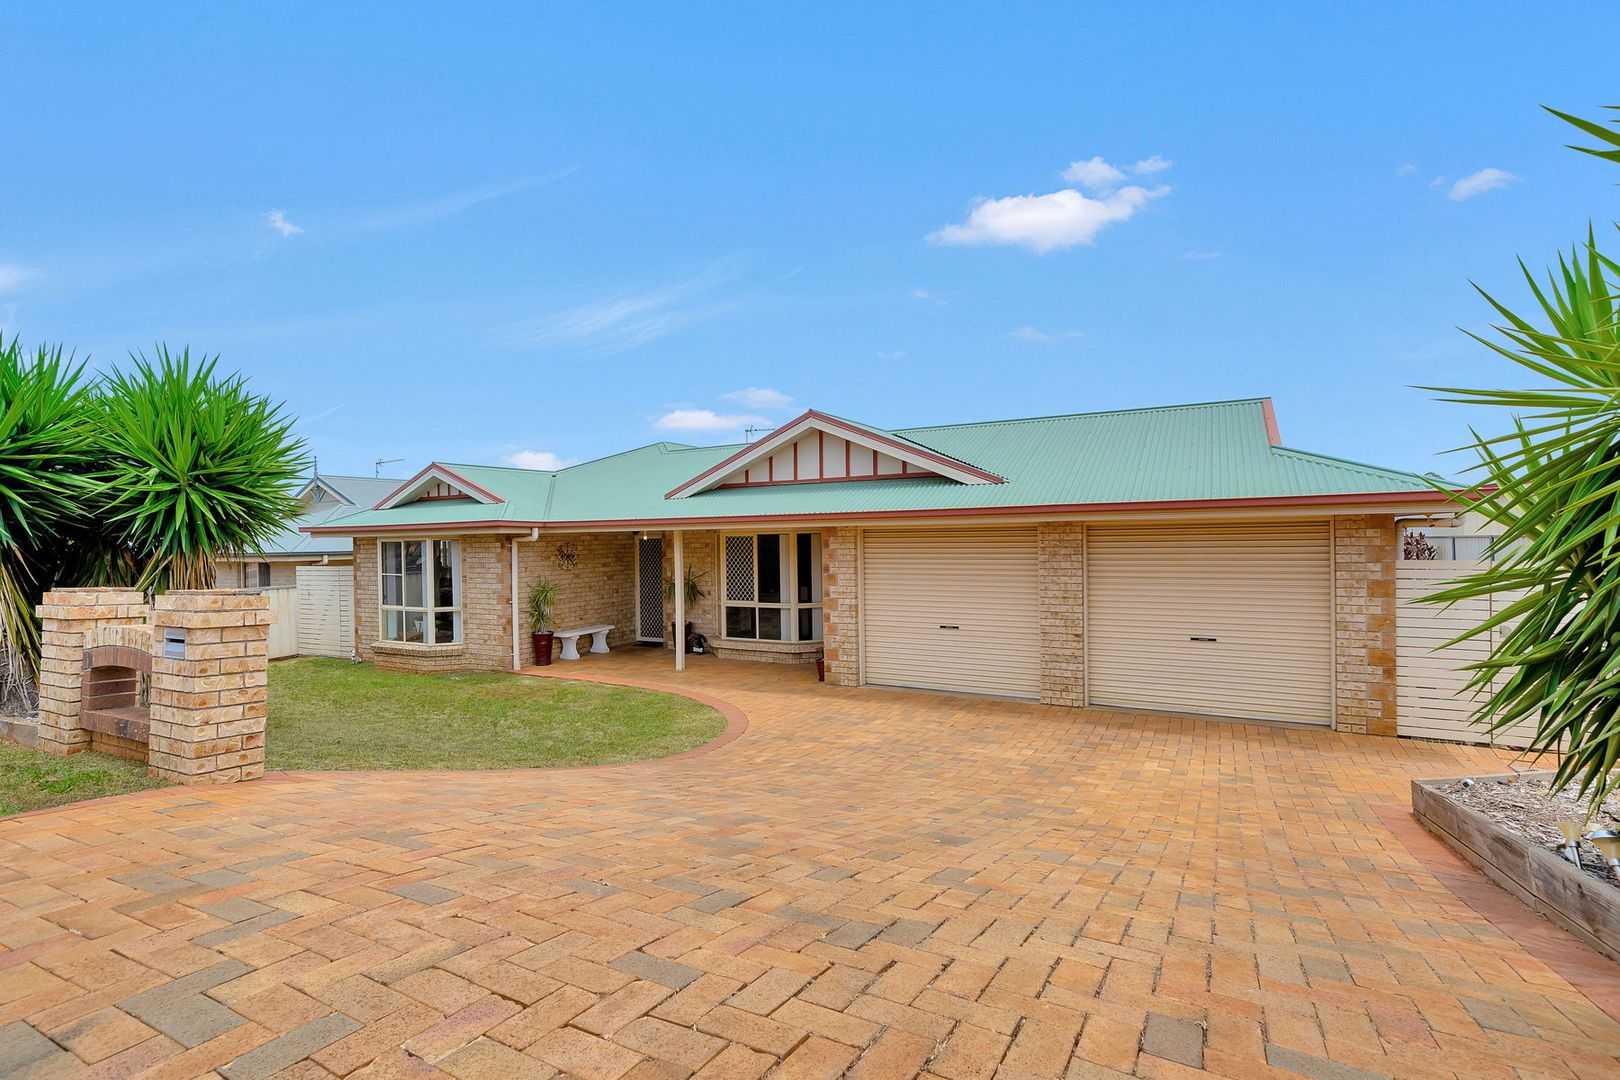 57 Gorman Street, Darling Heights QLD 4350, Image 0